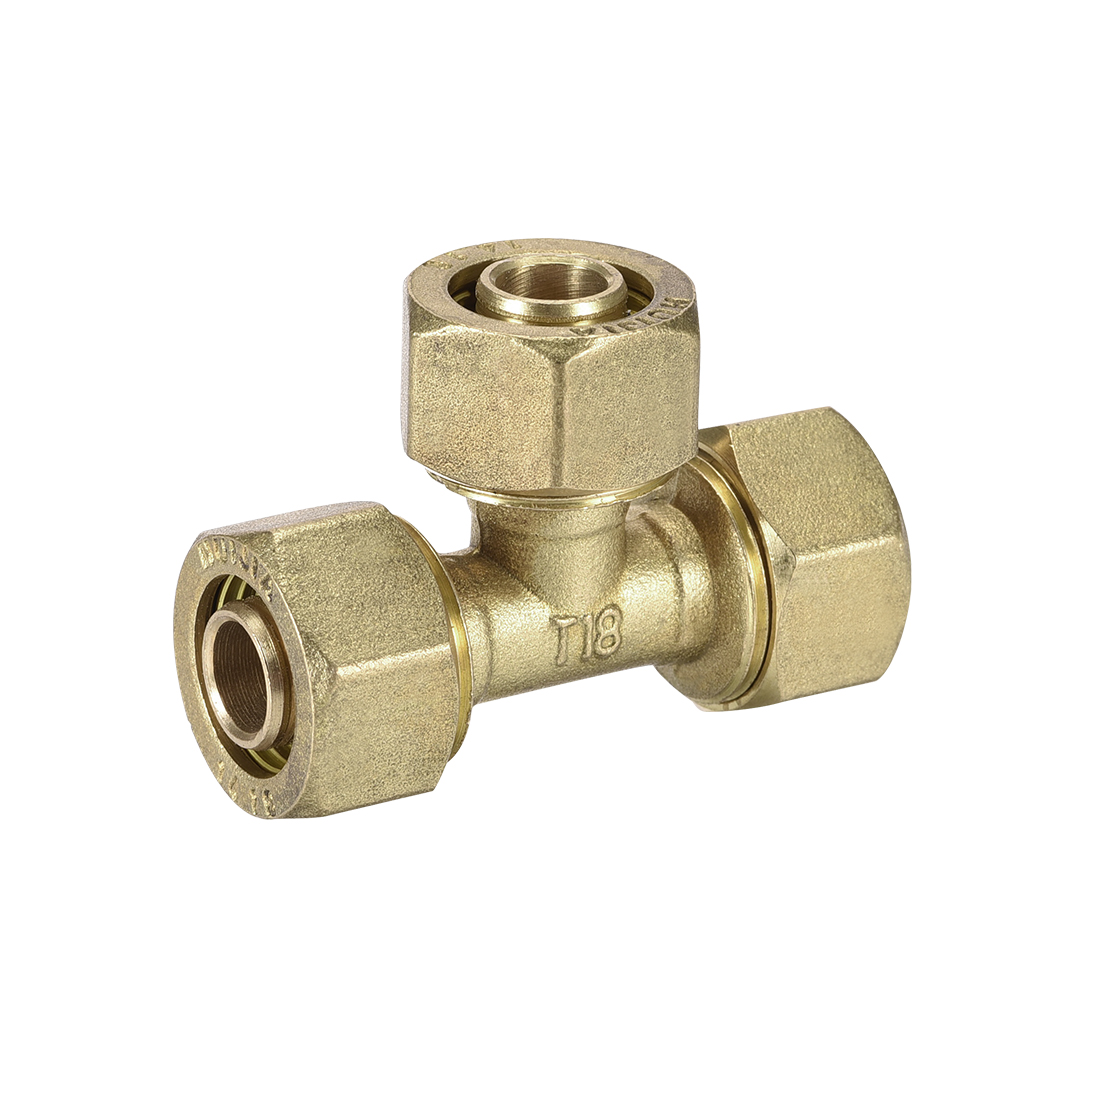 Brass Compression Tube Fitting Tee 14mm Tube ID Flared Fitting